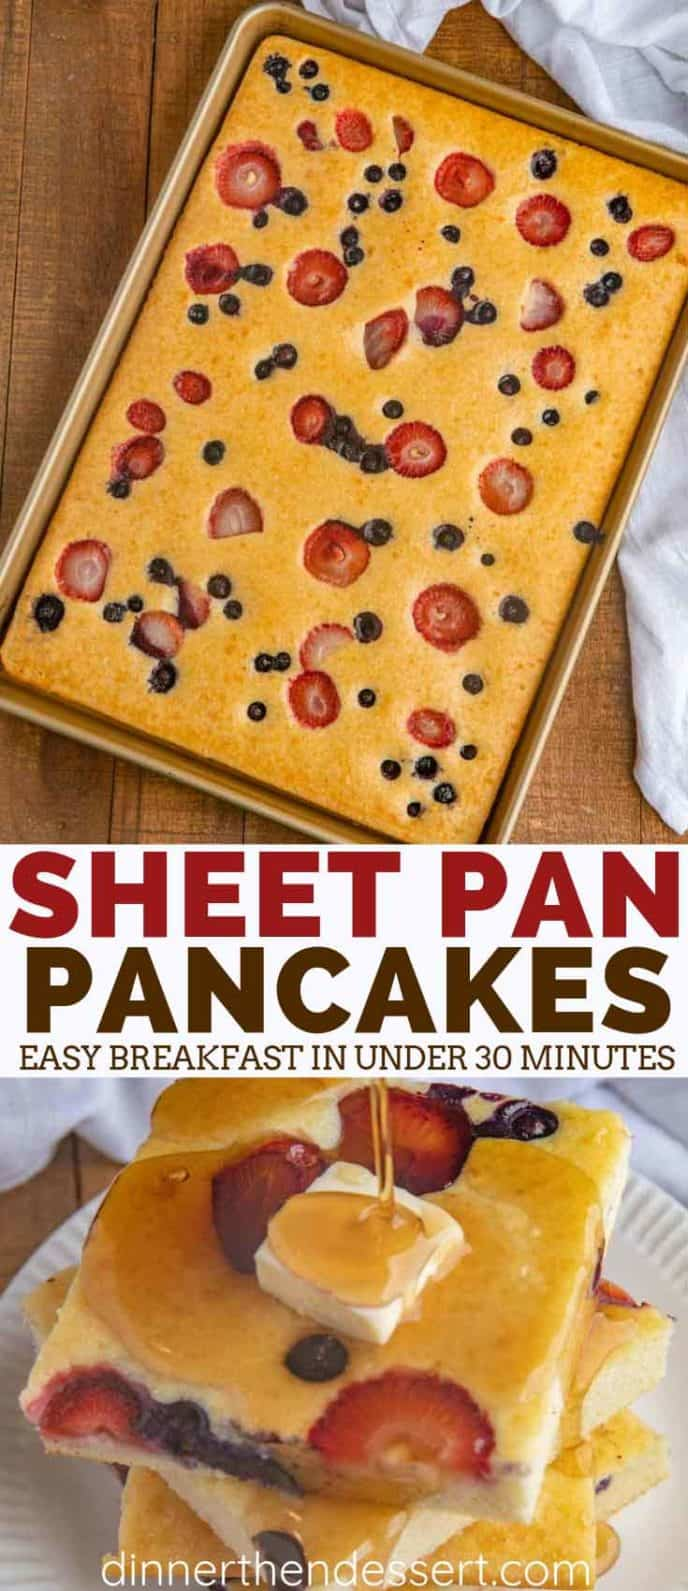 Sheet Pan Pancakes, Perfect for Brunch!